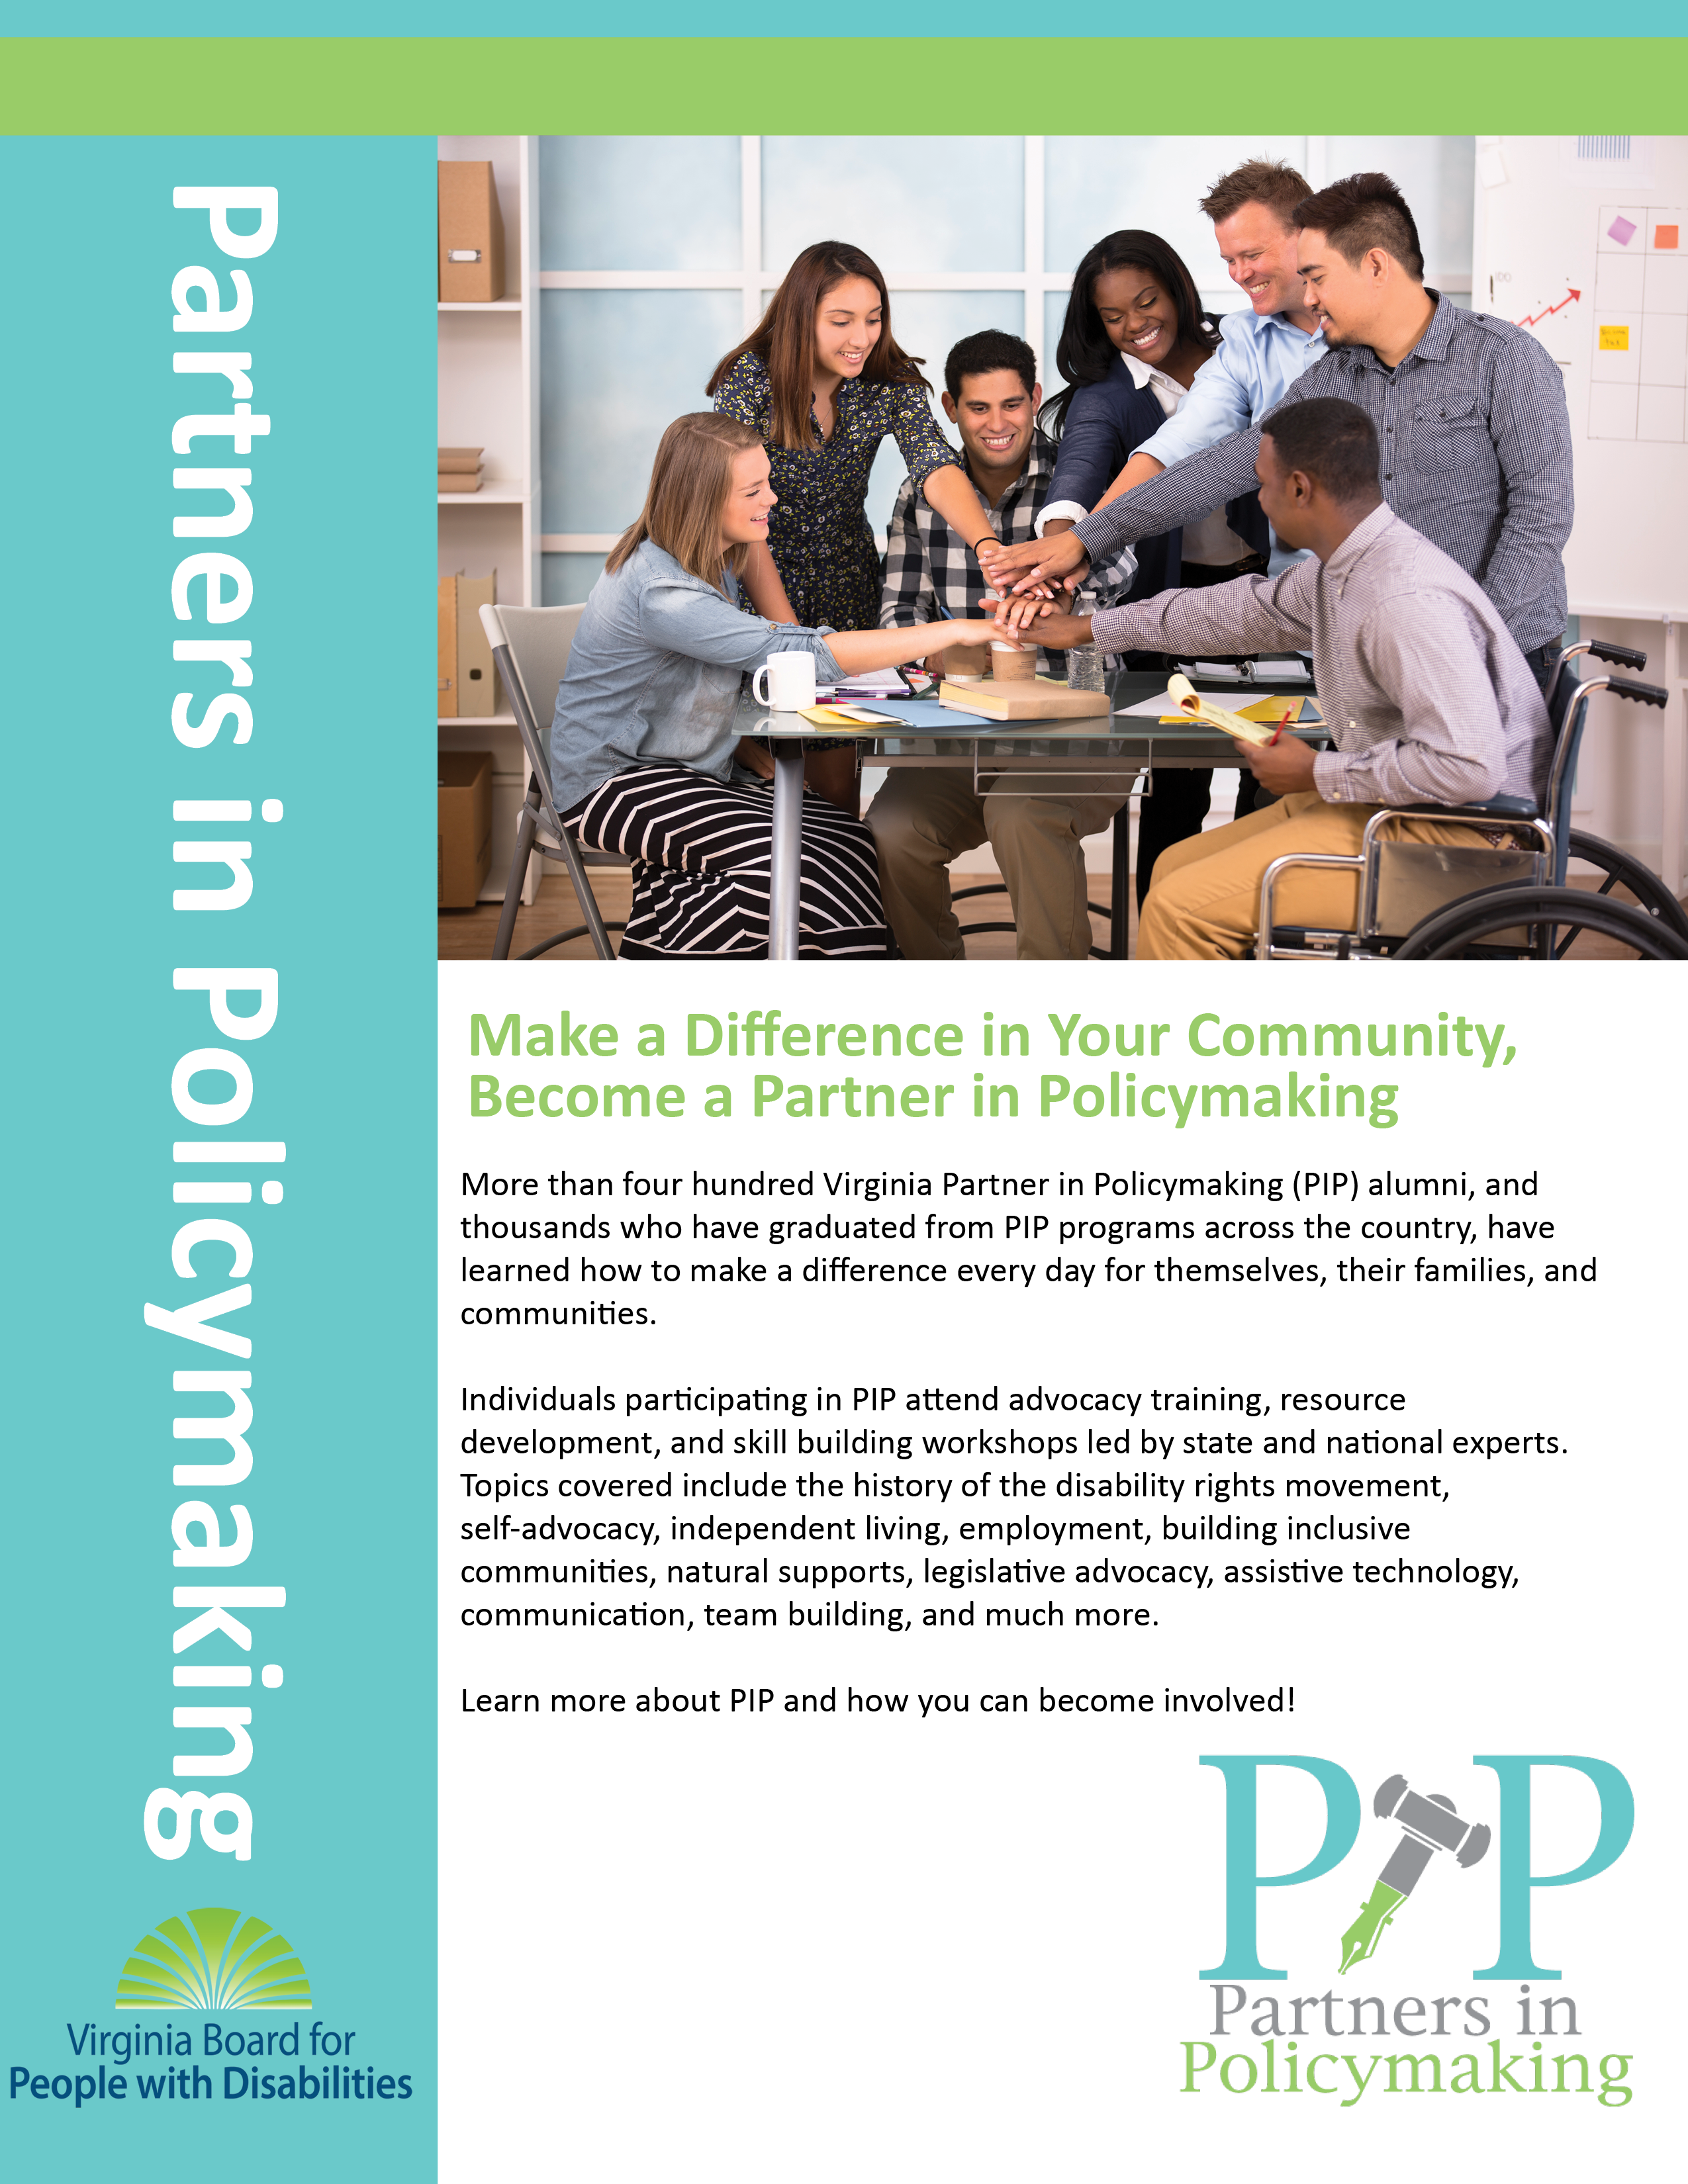 Partners in policymaking virginia board for people with disabilities partners in policy making flyer available as a pdf download on this site aiddatafo Gallery